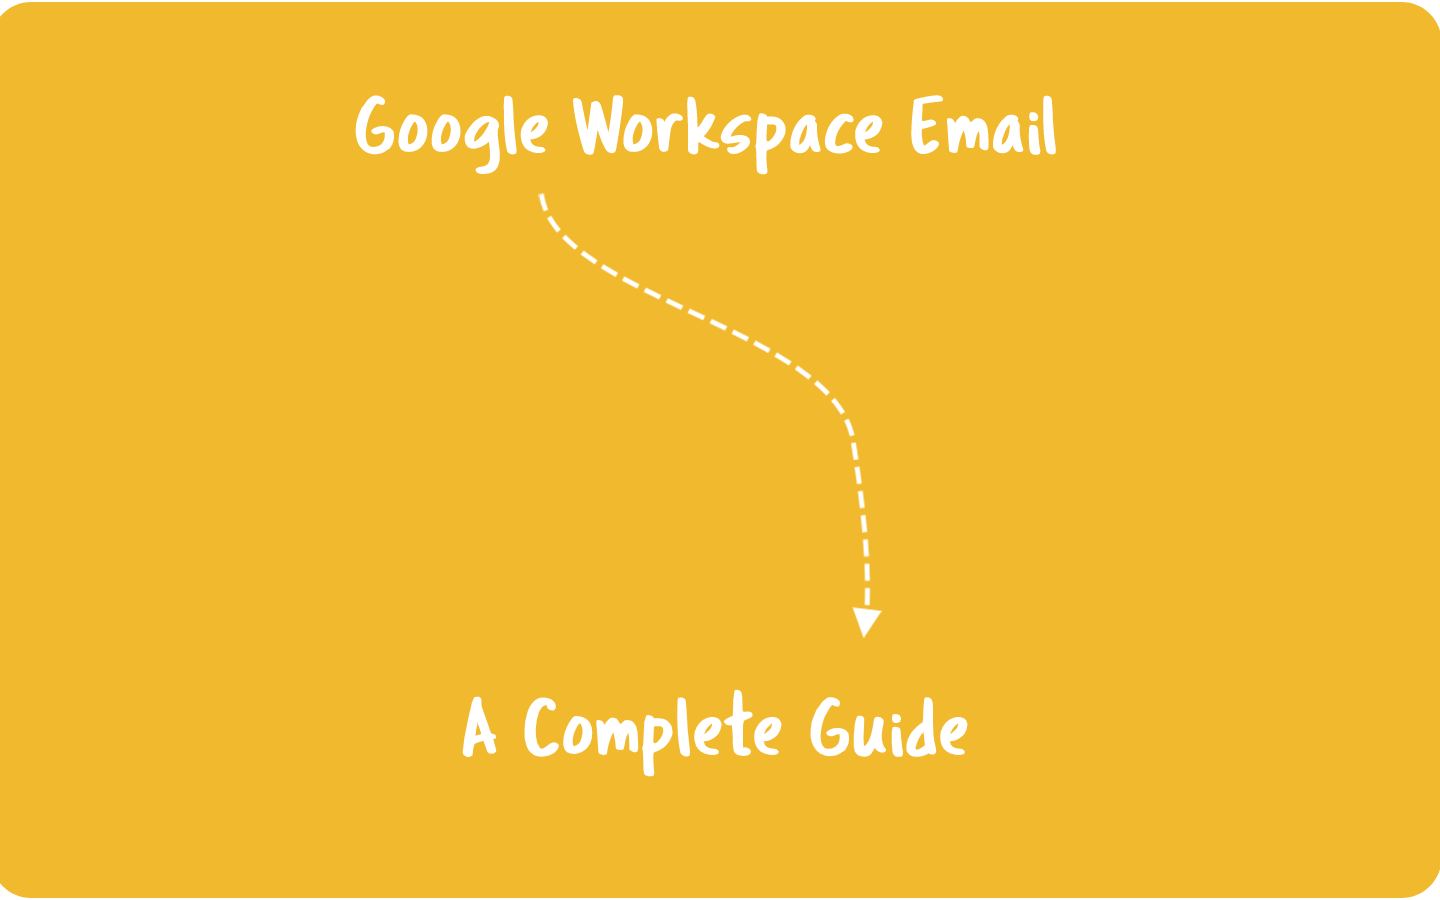 google workspace email